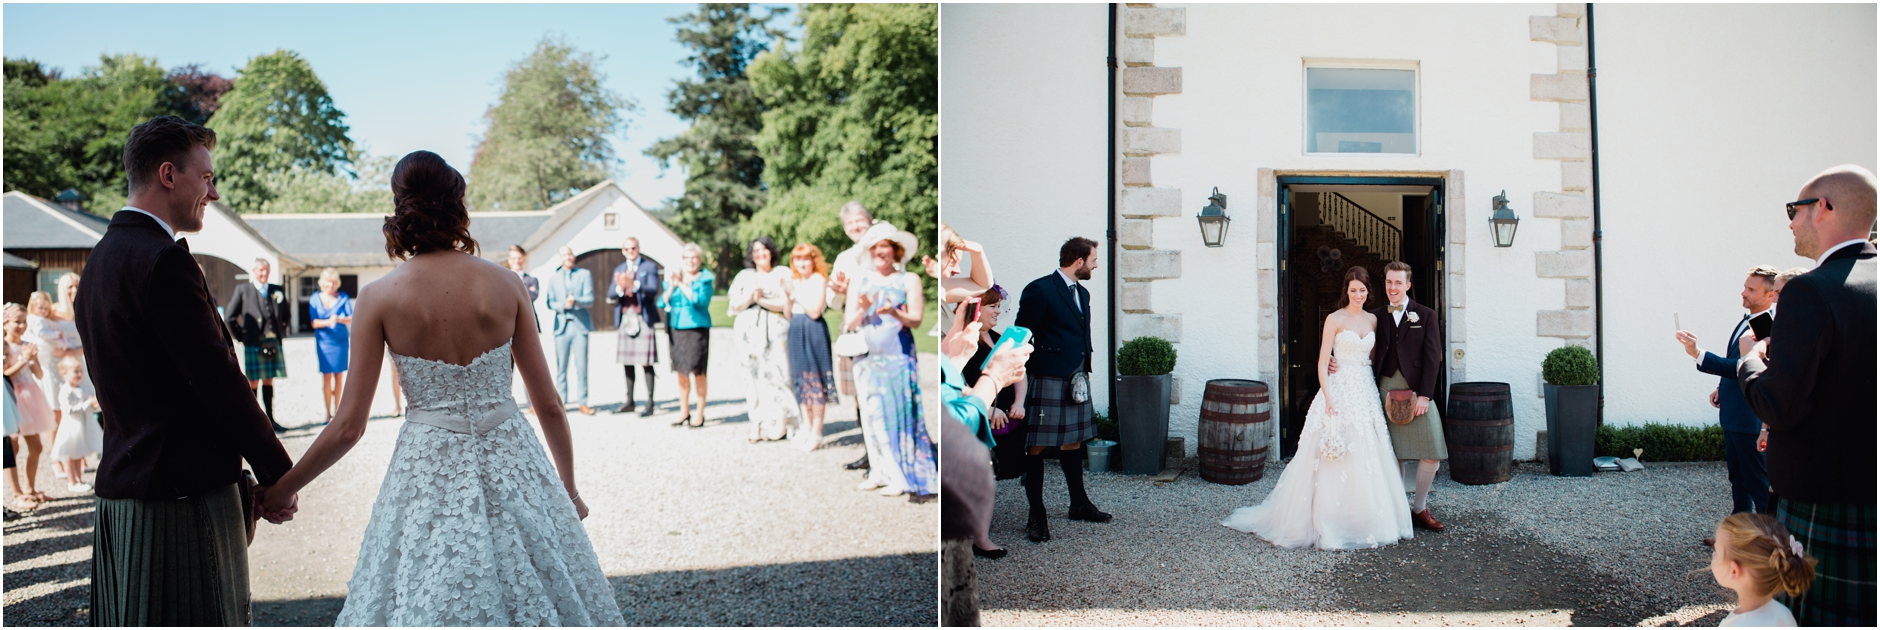 ntry house wedding photographer aberdeen highlandsntry house wedding photographer aberdeen highlands